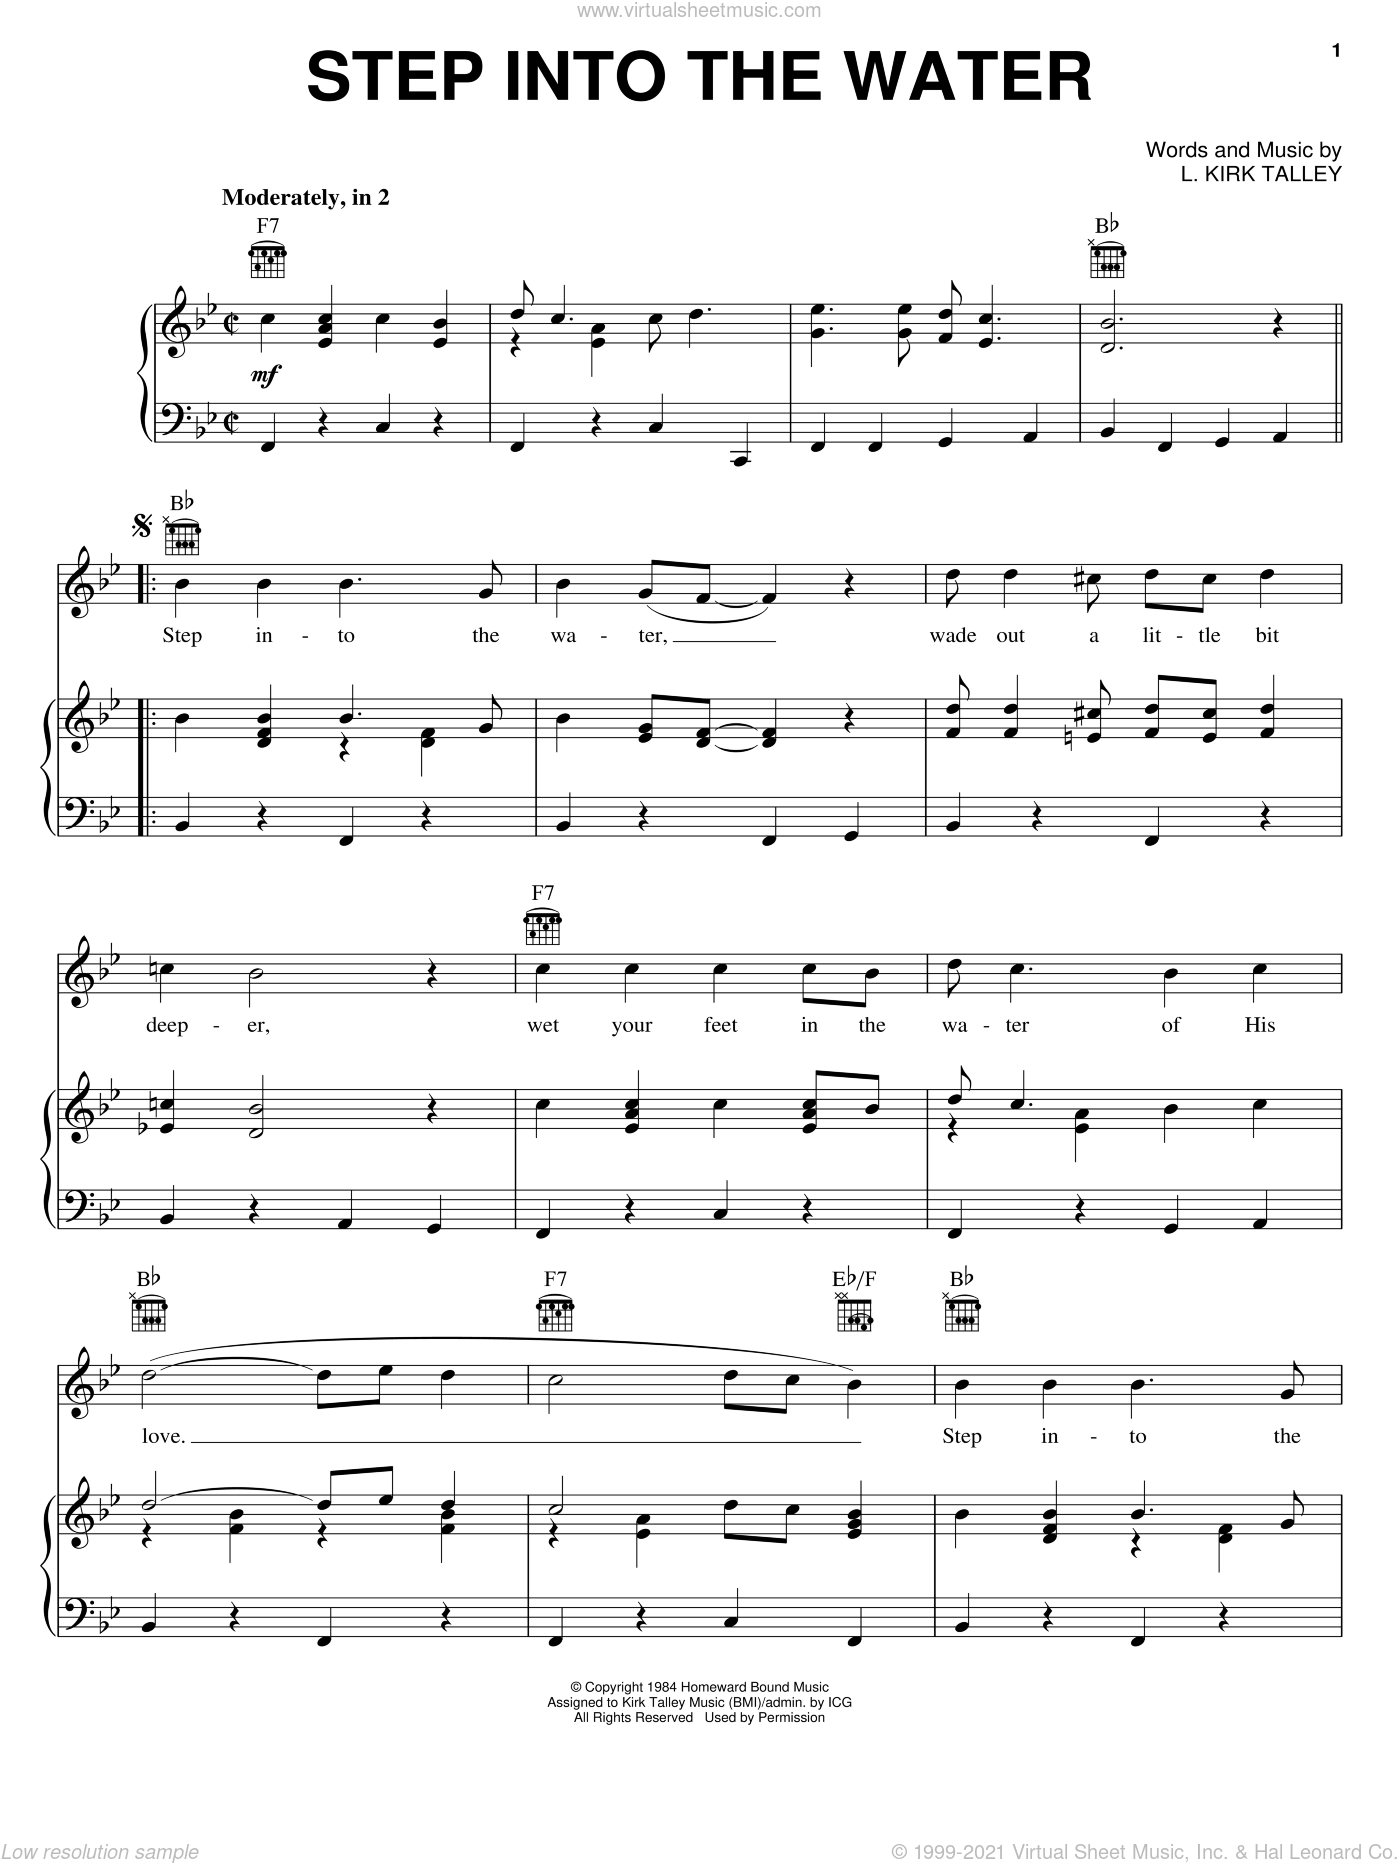 Step Into The Water sheet music for voice, piano or guitar by Kirk Talley, intermediate. Score Image Preview.